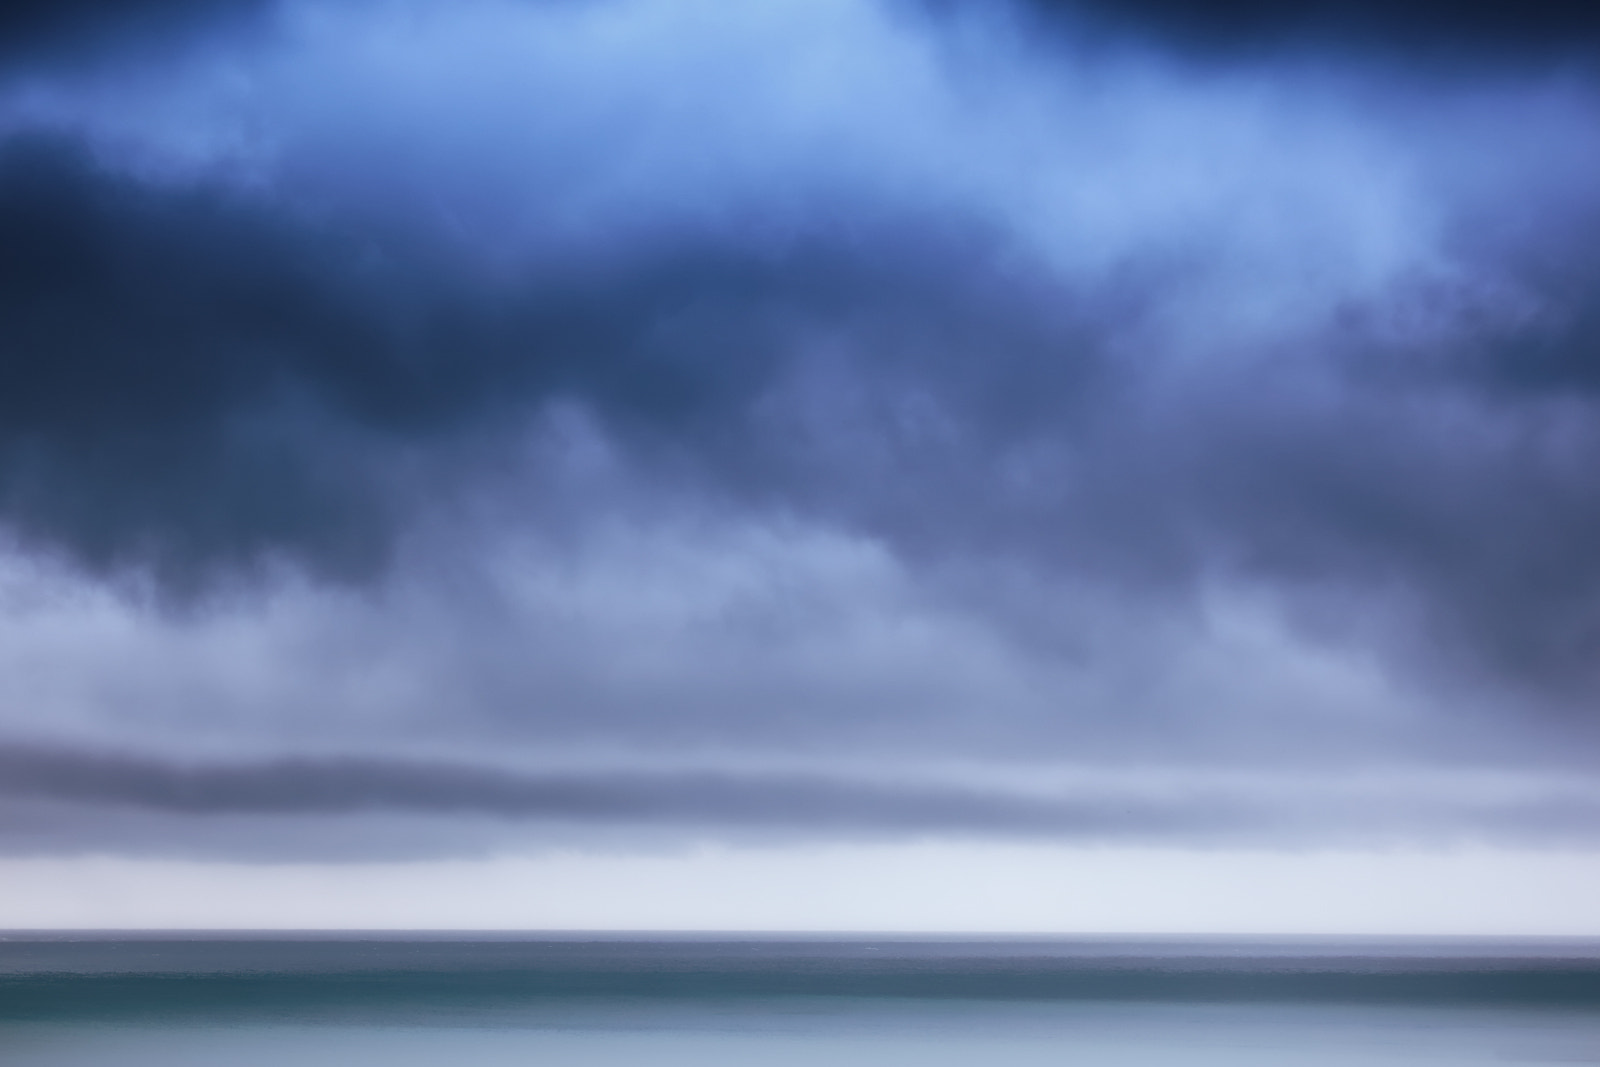 Photograph Stormy and Calm by Mario Moreno on 500px